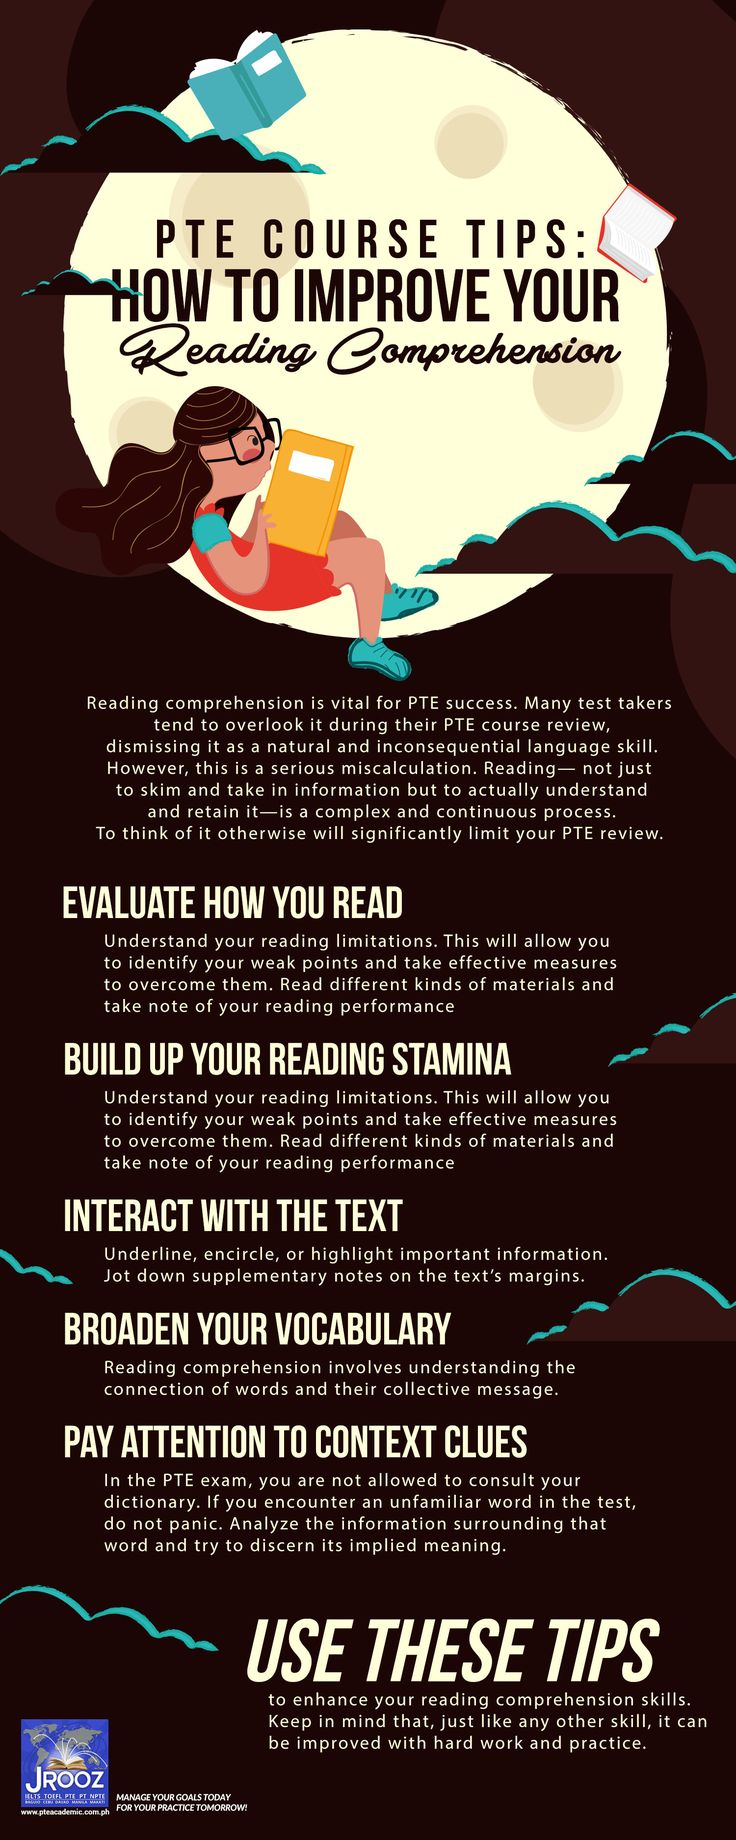 PTE Course Tips: How to Improve Your Reading Comprehension - Reading comprehension is vital for PTE success. Many test takers tend to overlook it during their PTE course review, dismissing it as a natural and inconsequential language skill.